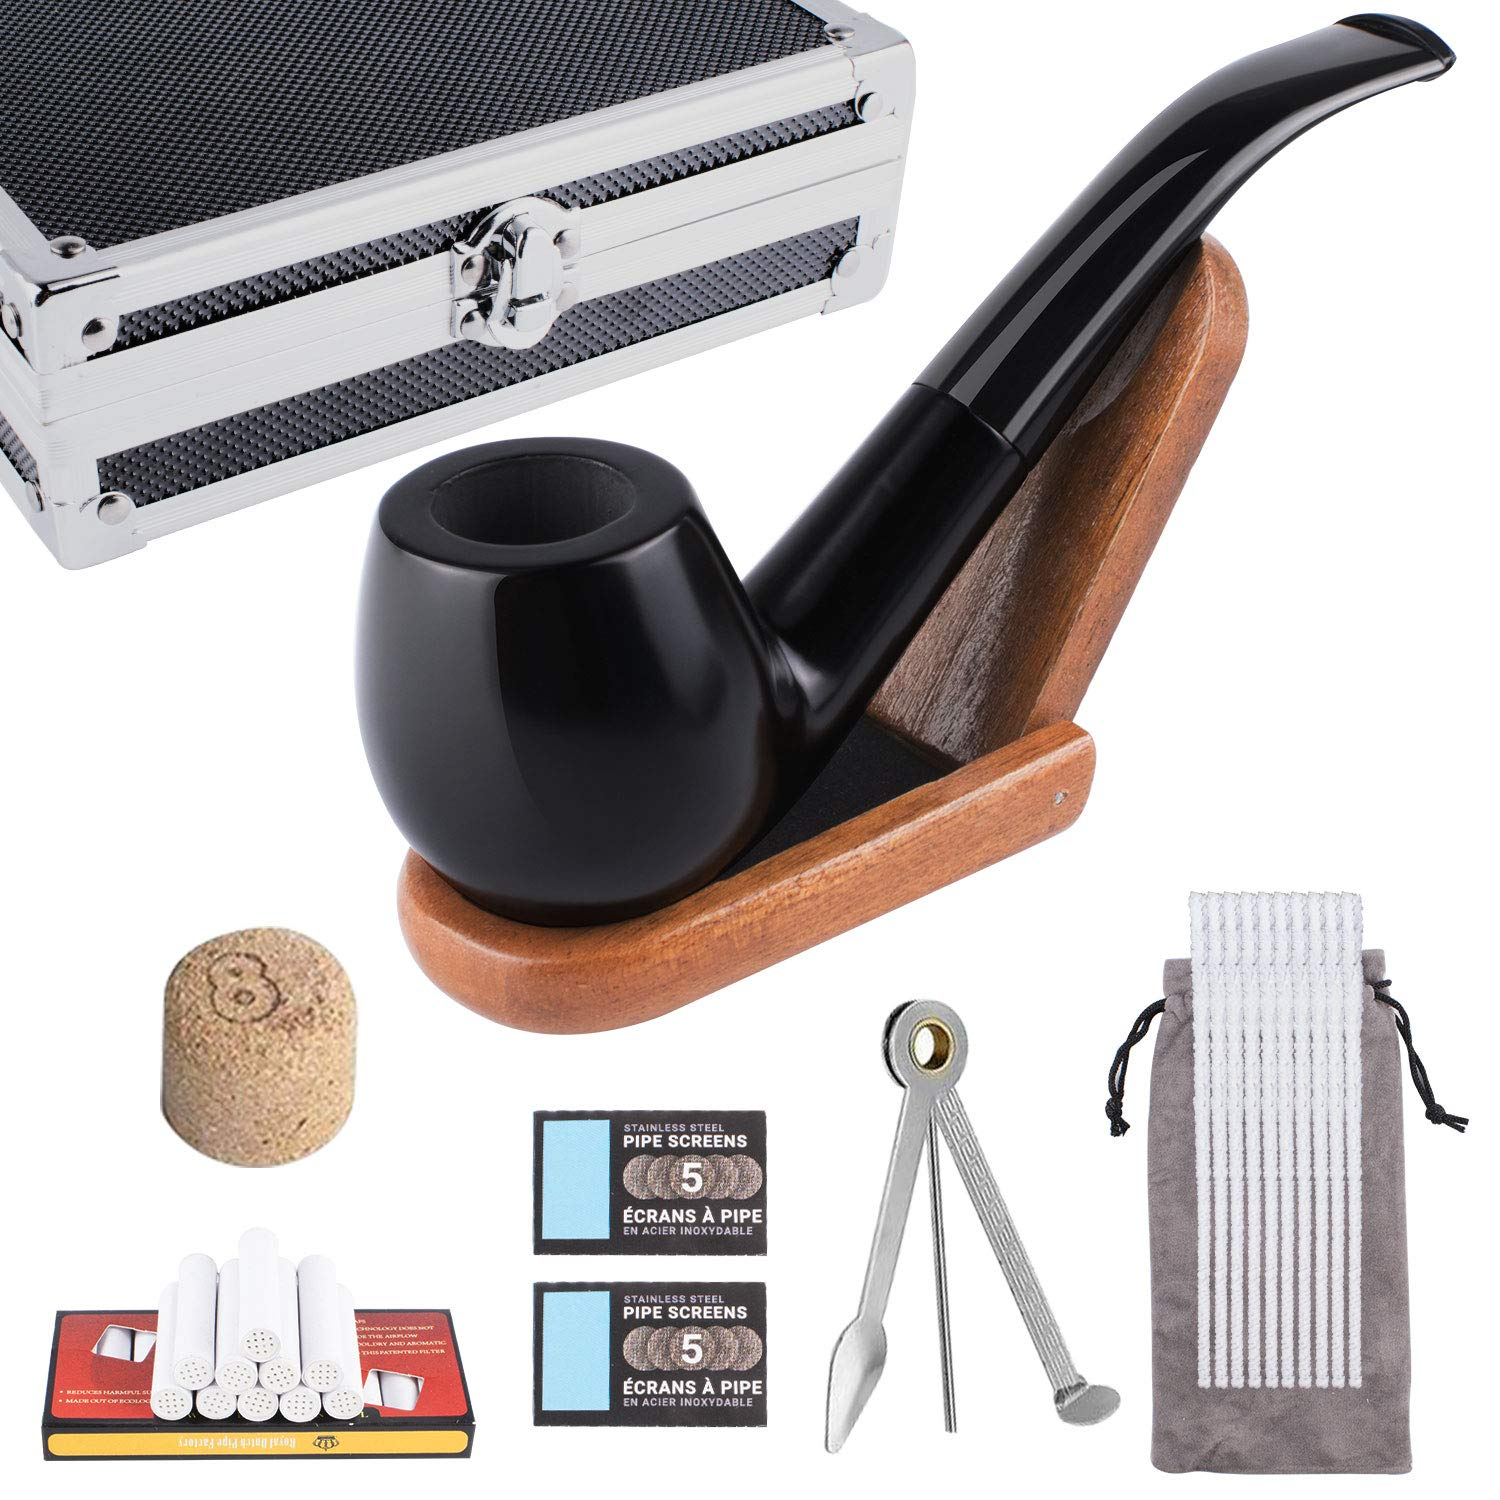 Wooden Tobacco Pipe kit for Smoking, 8 in 1 Tobacco Pipe, Luxury Kit with Wooden Stand, 3-1 Pipe Scraper, 10 Pipe Cleaners, 9 mm Pipe Filters and Cork Knockers by FeelGlad